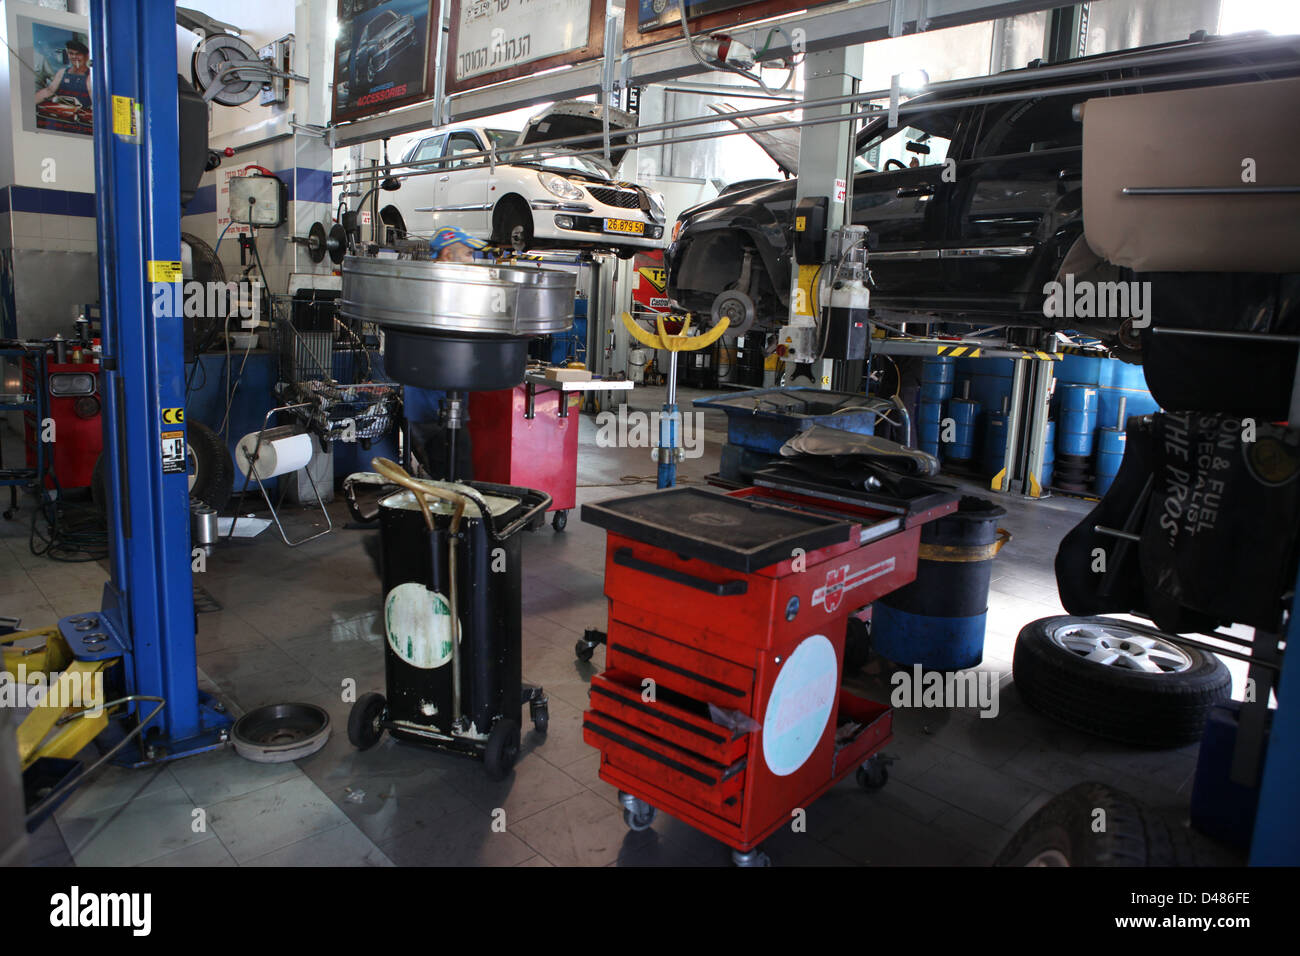 Car being serviced at a repair shop - Stock Image